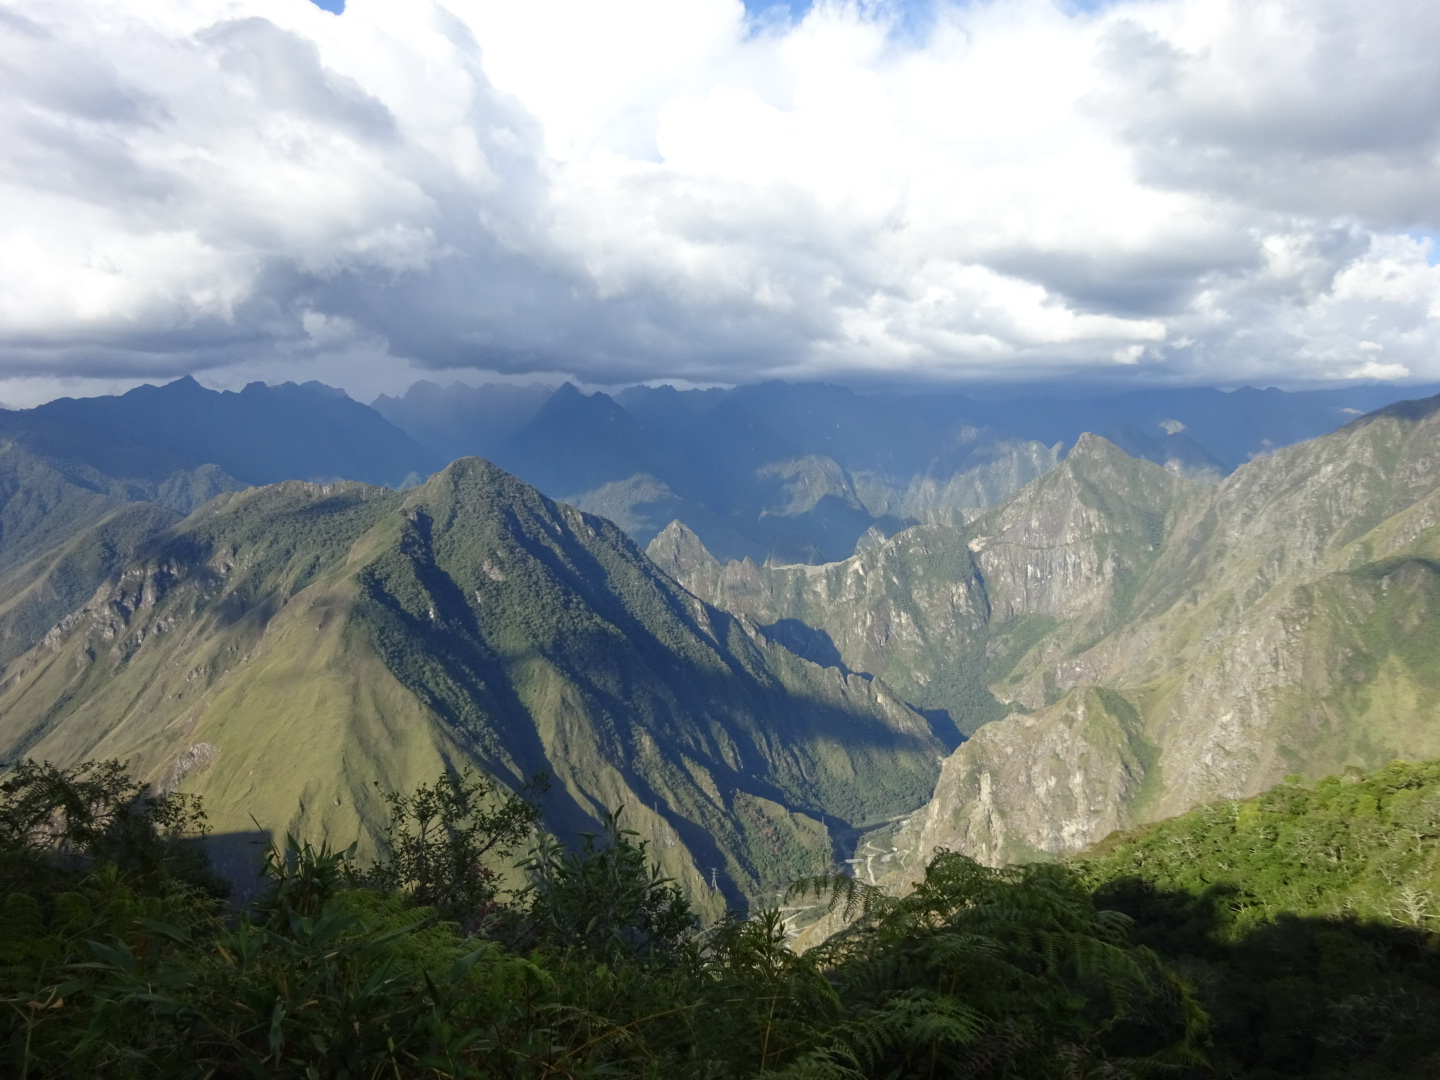 The valley of the Inca's